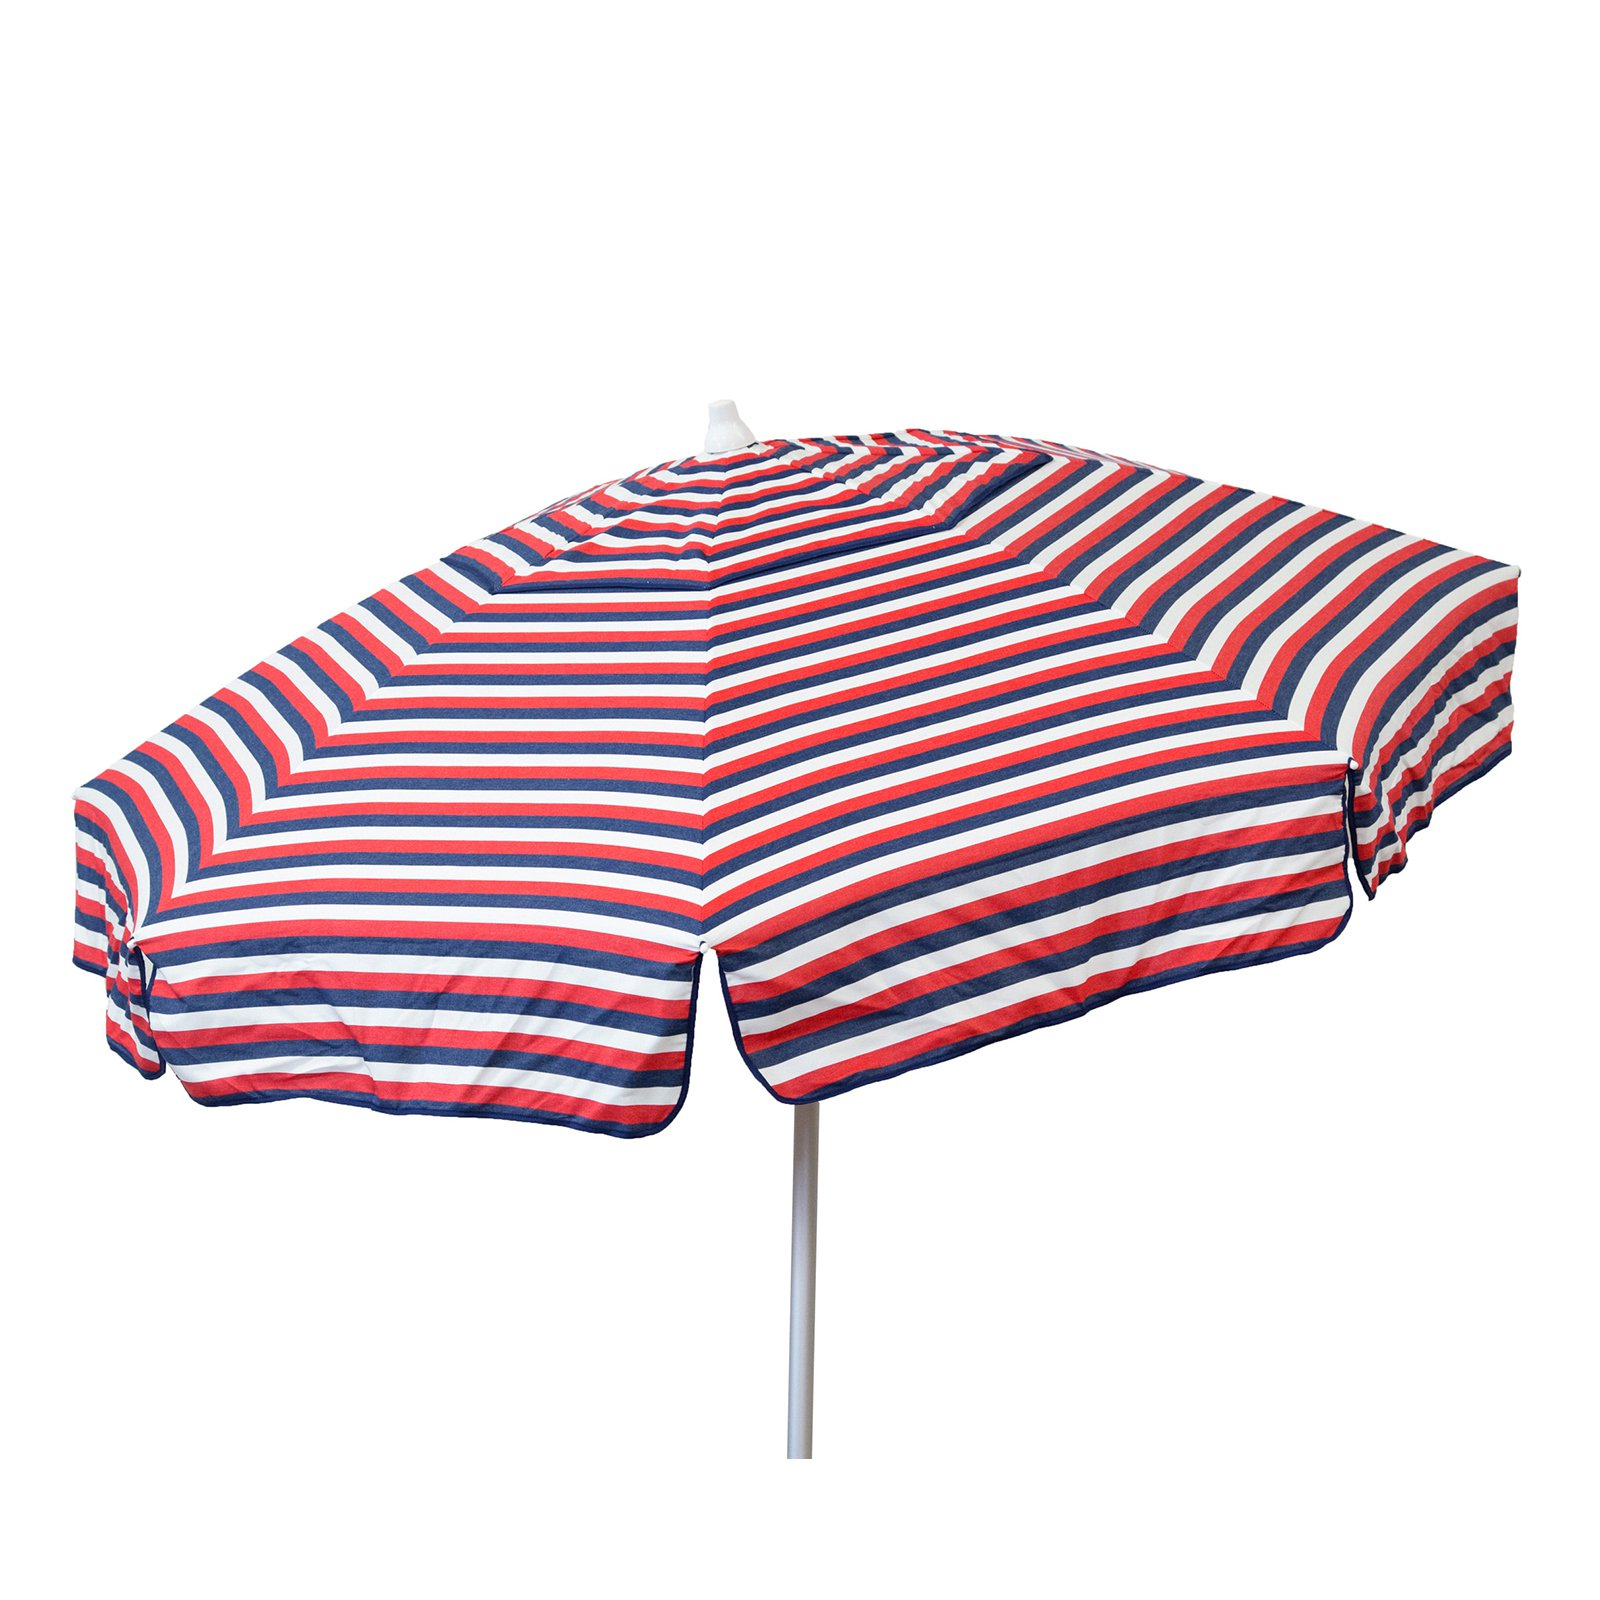 DestinationGear Euro 6' Umbrella Tri Color Stripe Red/White/Blue Beach Pole